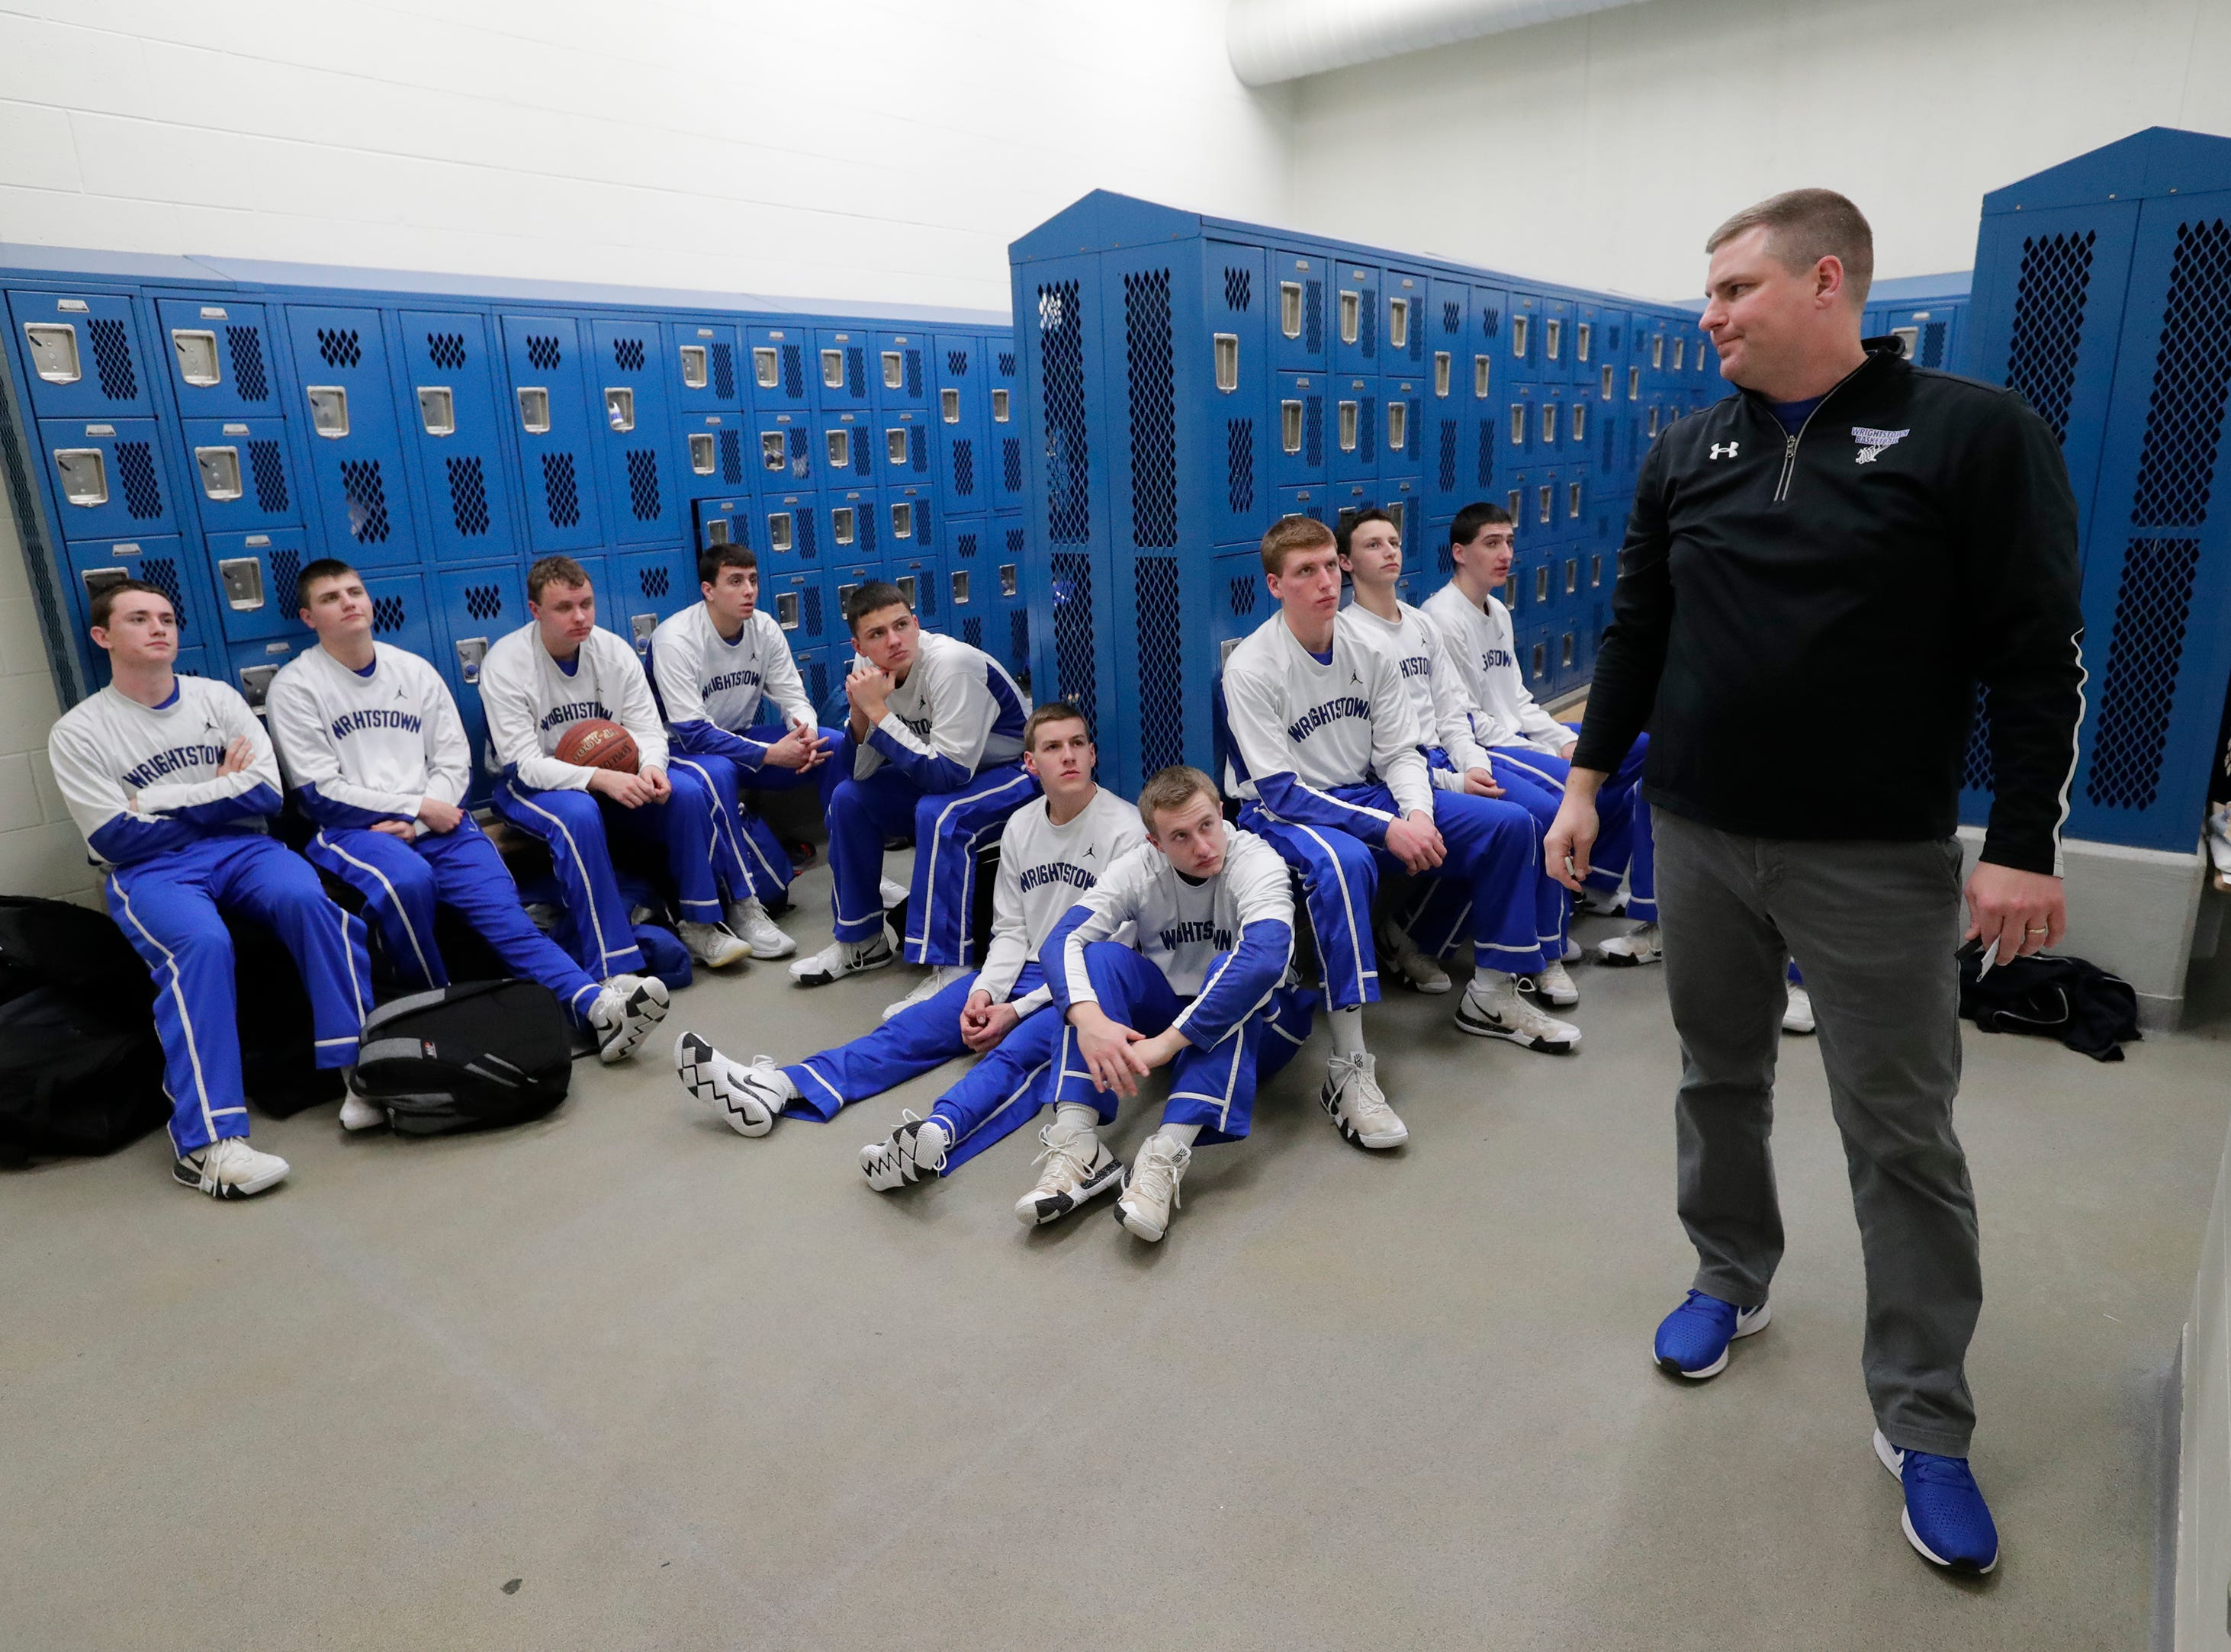 Wrightstown High School's coach Cory Haese talks to his players prior to taking to the court against Little Chute High School during their boys basketball game Friday, February 1, 2019, in Little Chute, Wis. 